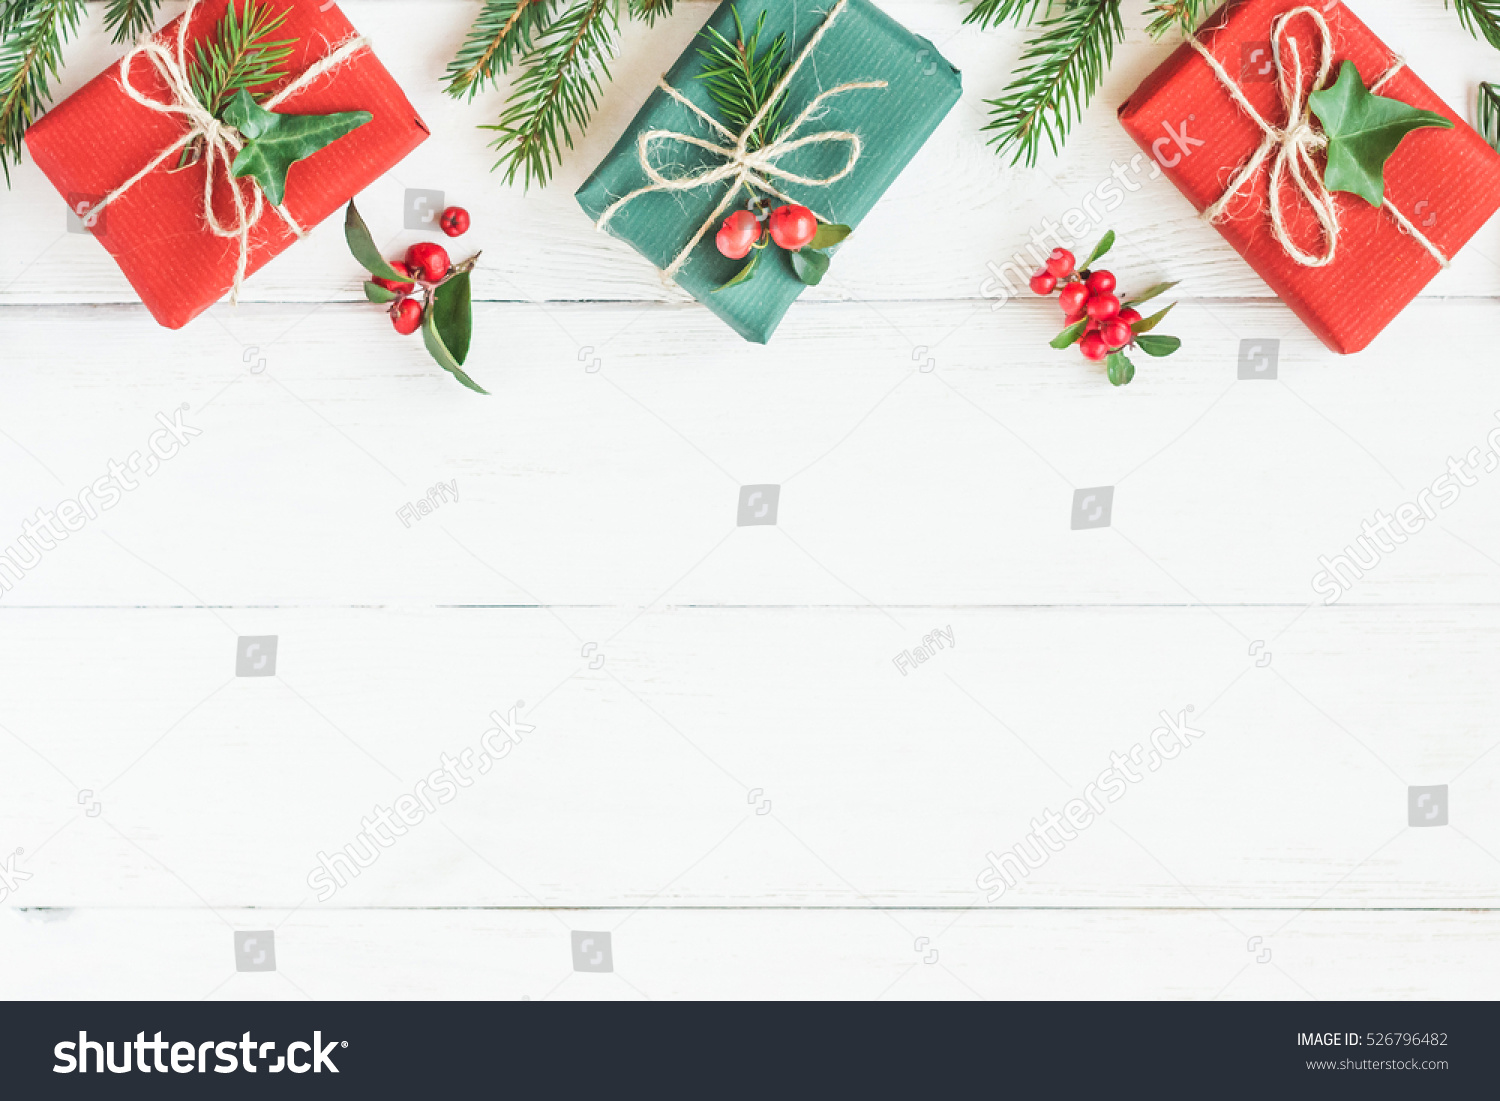 Christmas Toys Border : Christmas border gifts fir branches stock photo